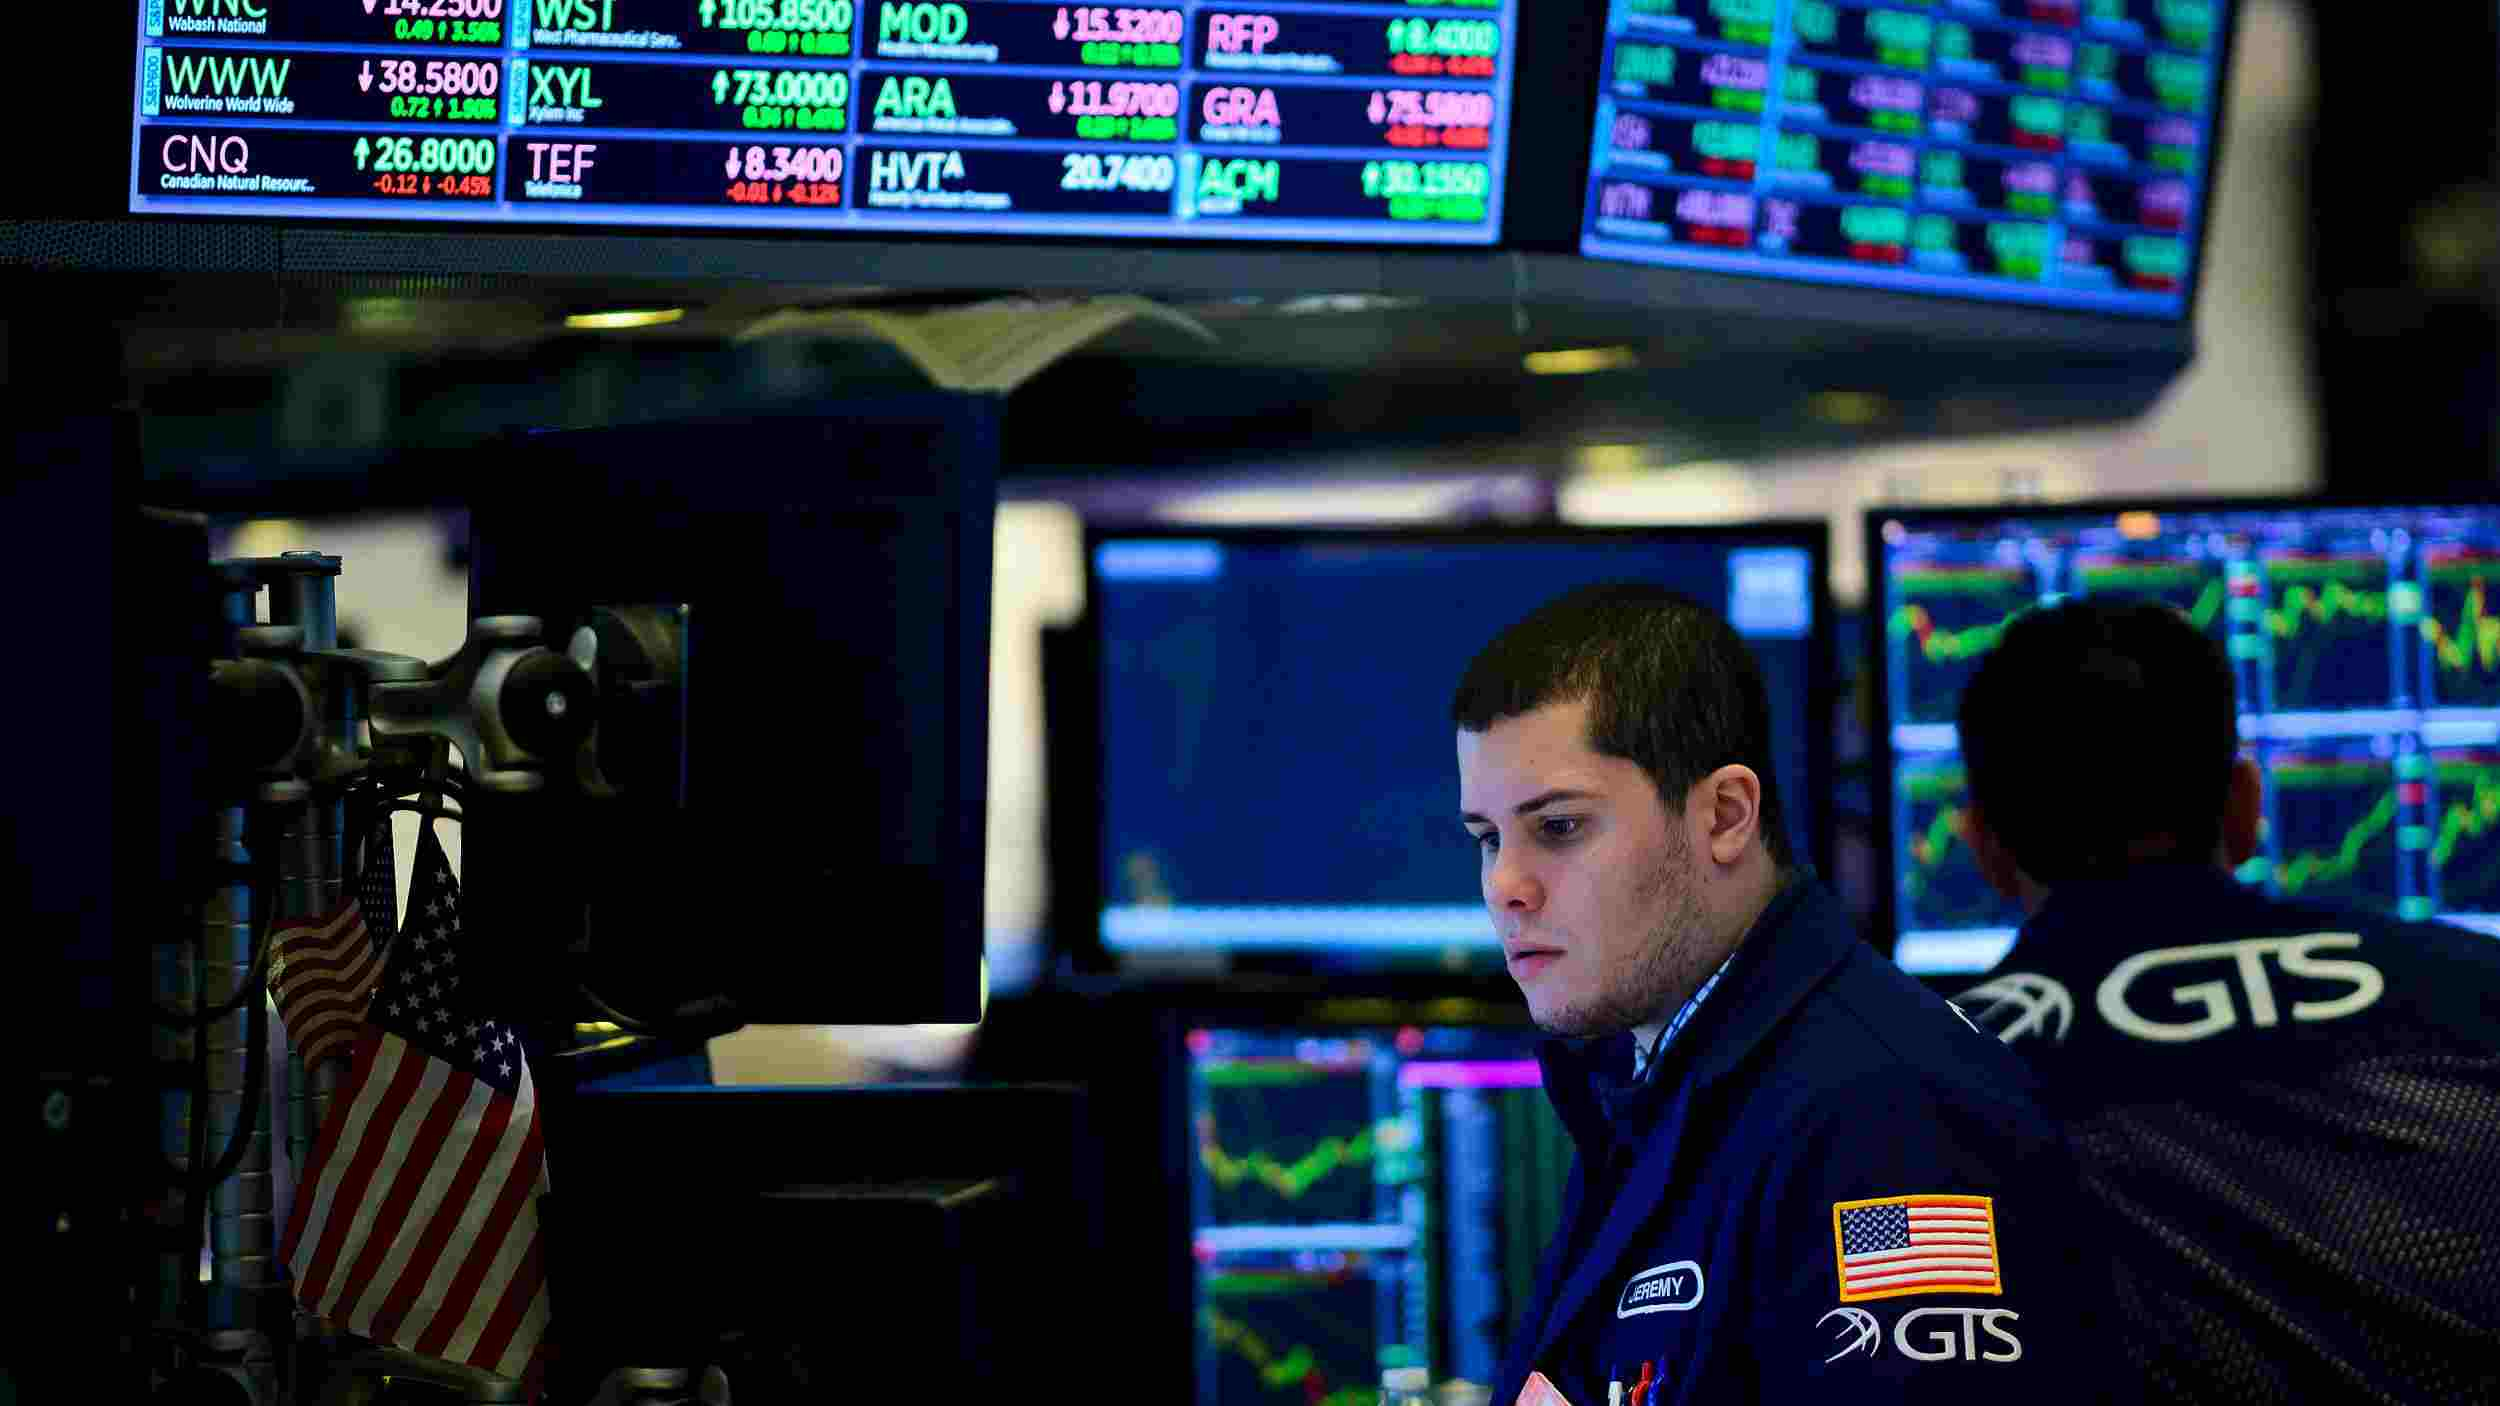 US stocks open up despite another jobless claims spike